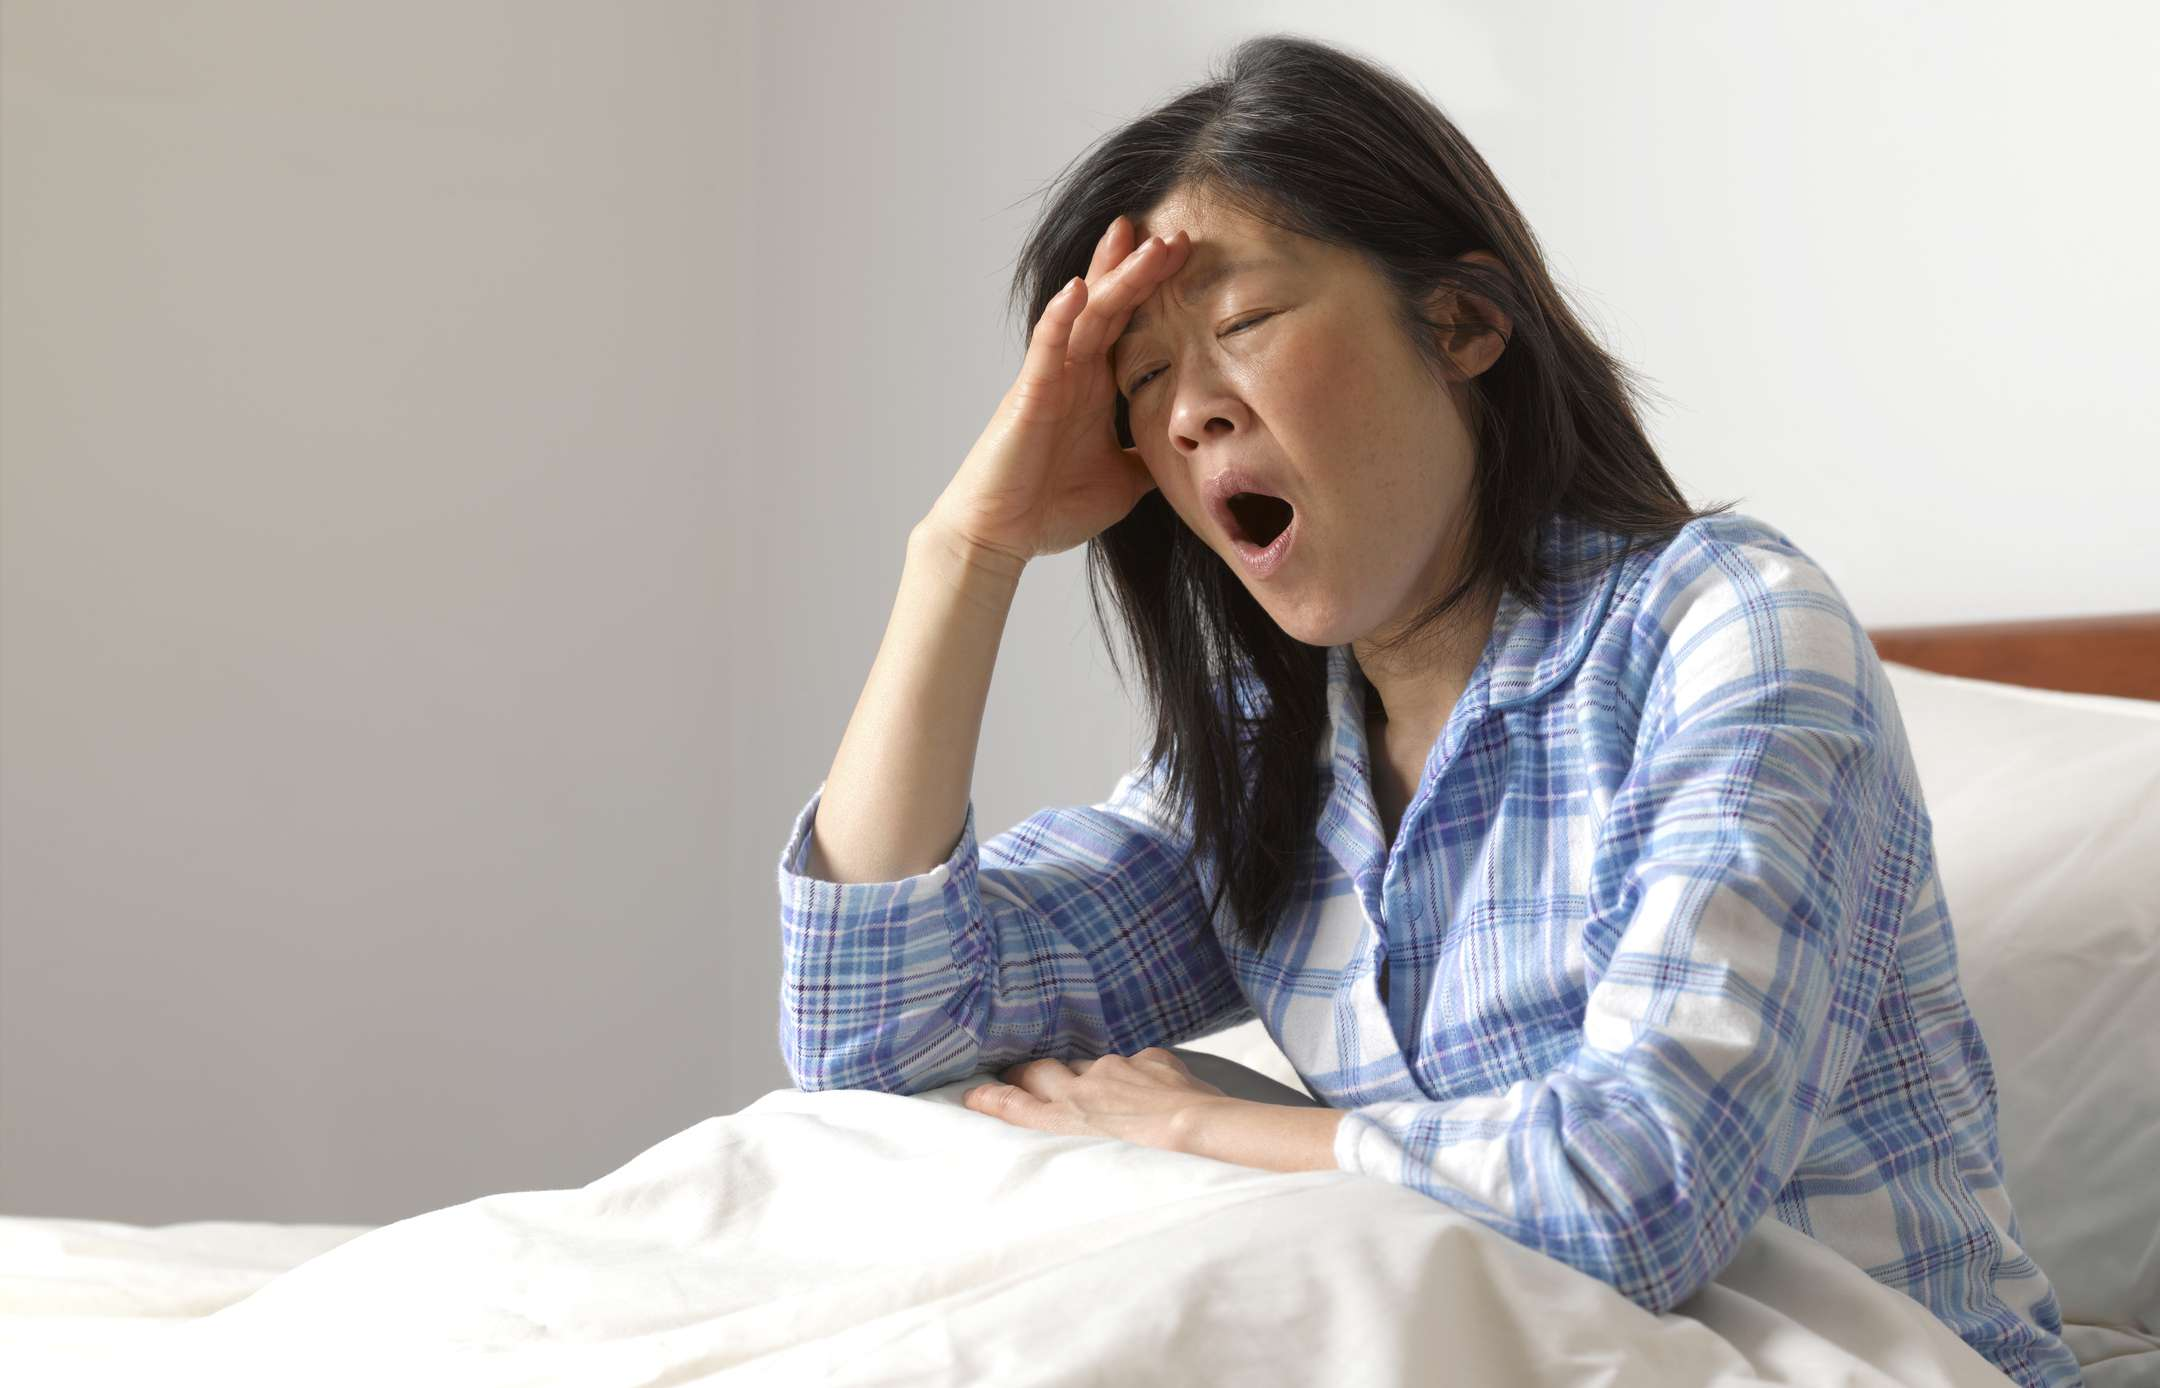 A woman sitting up and yawning in bed